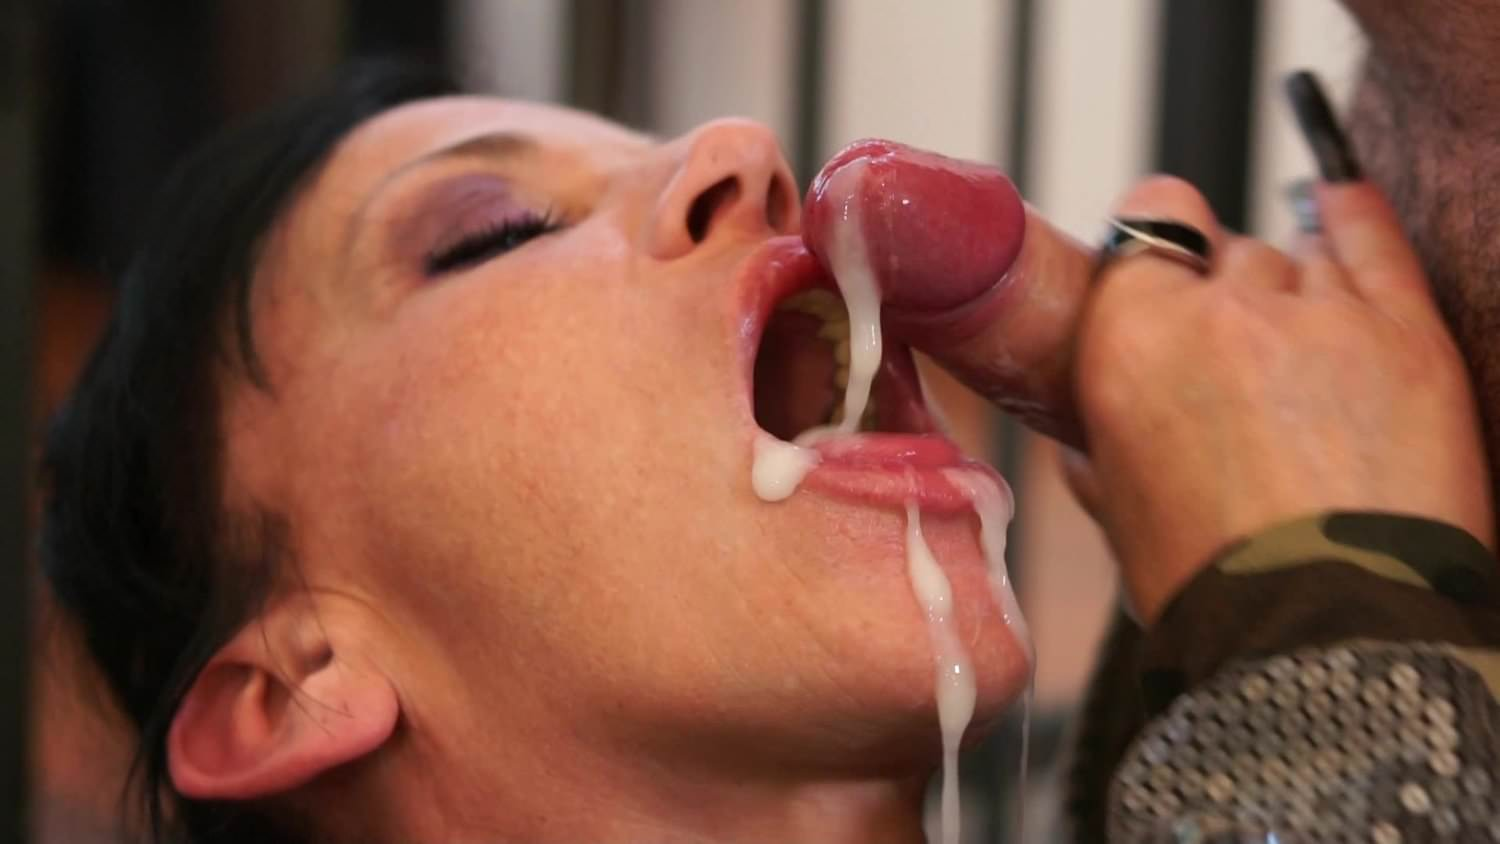 perfect girlfriend riding and blowing cock like its her daily job